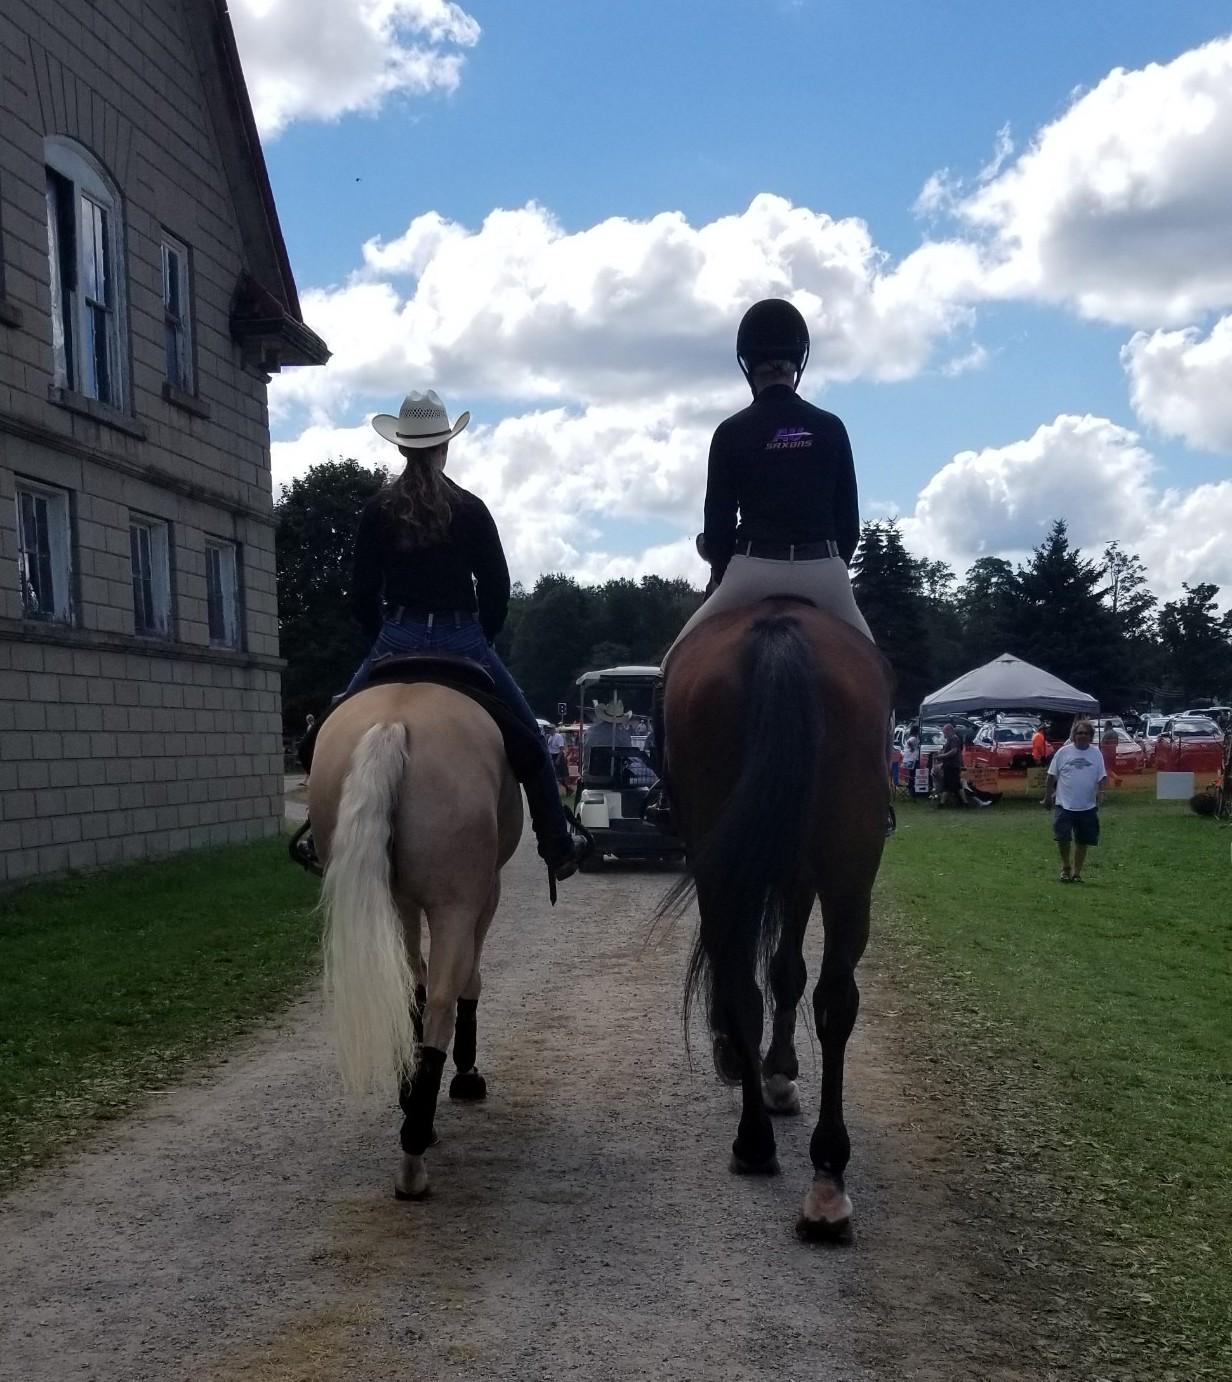 The Academic Equestrian Boundaries Horse Nation